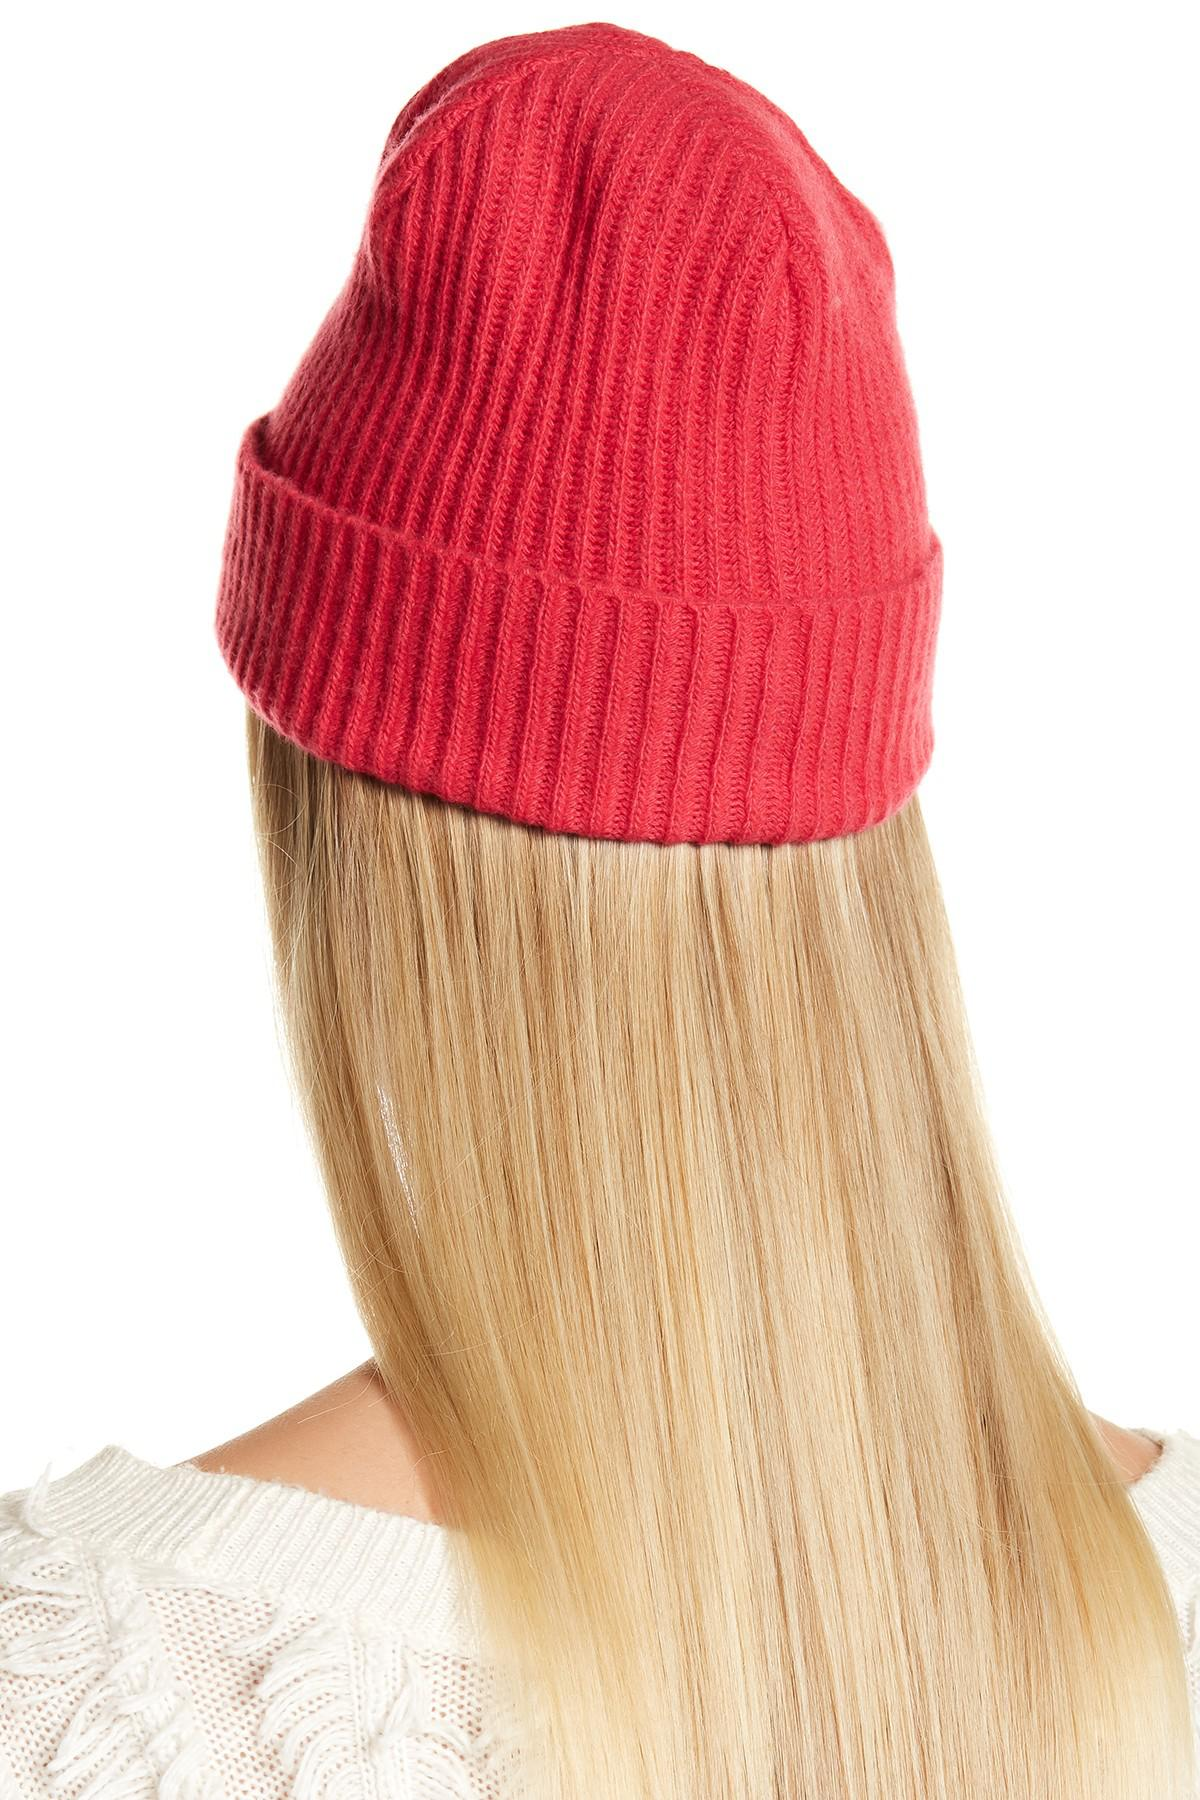 951b9c13246 Gallery. Previously sold at  Nordstrom Rack · Women s Cashmere Beanies ...